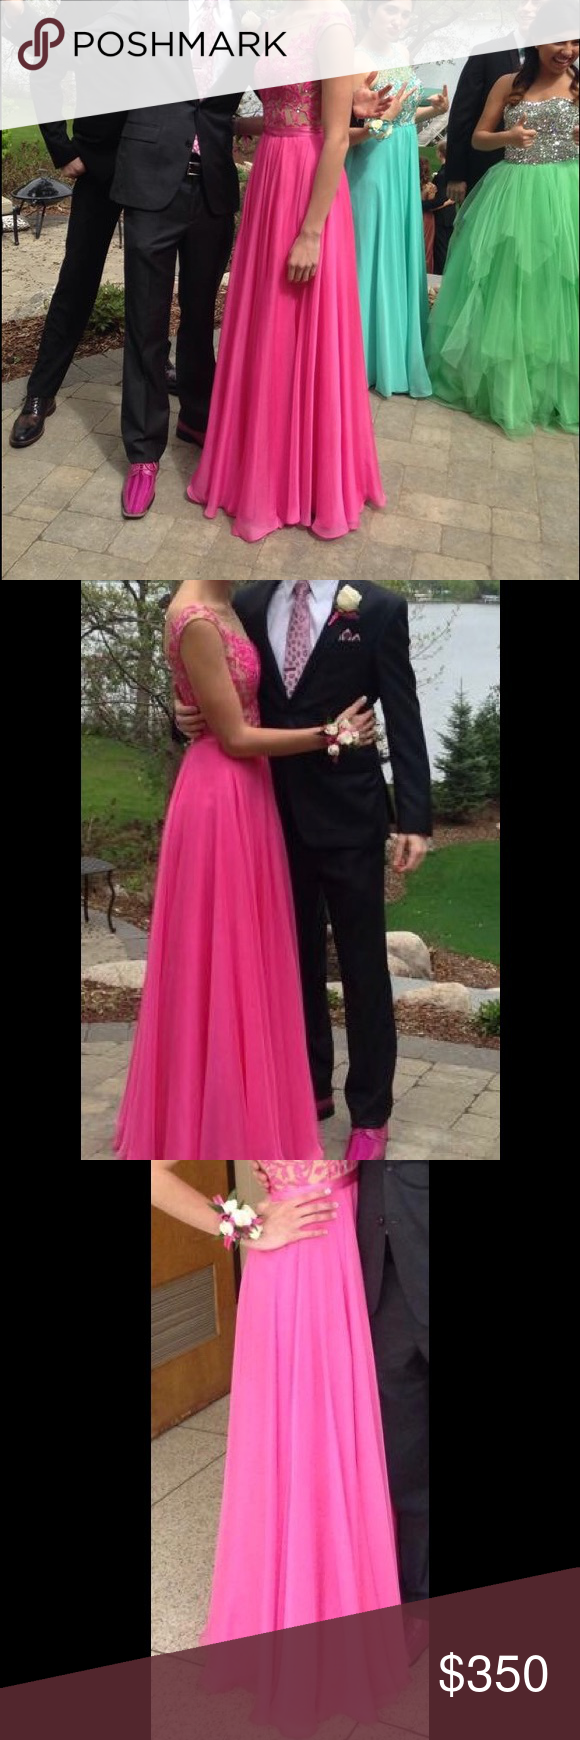 Sherri Hill prom dress, only worn once